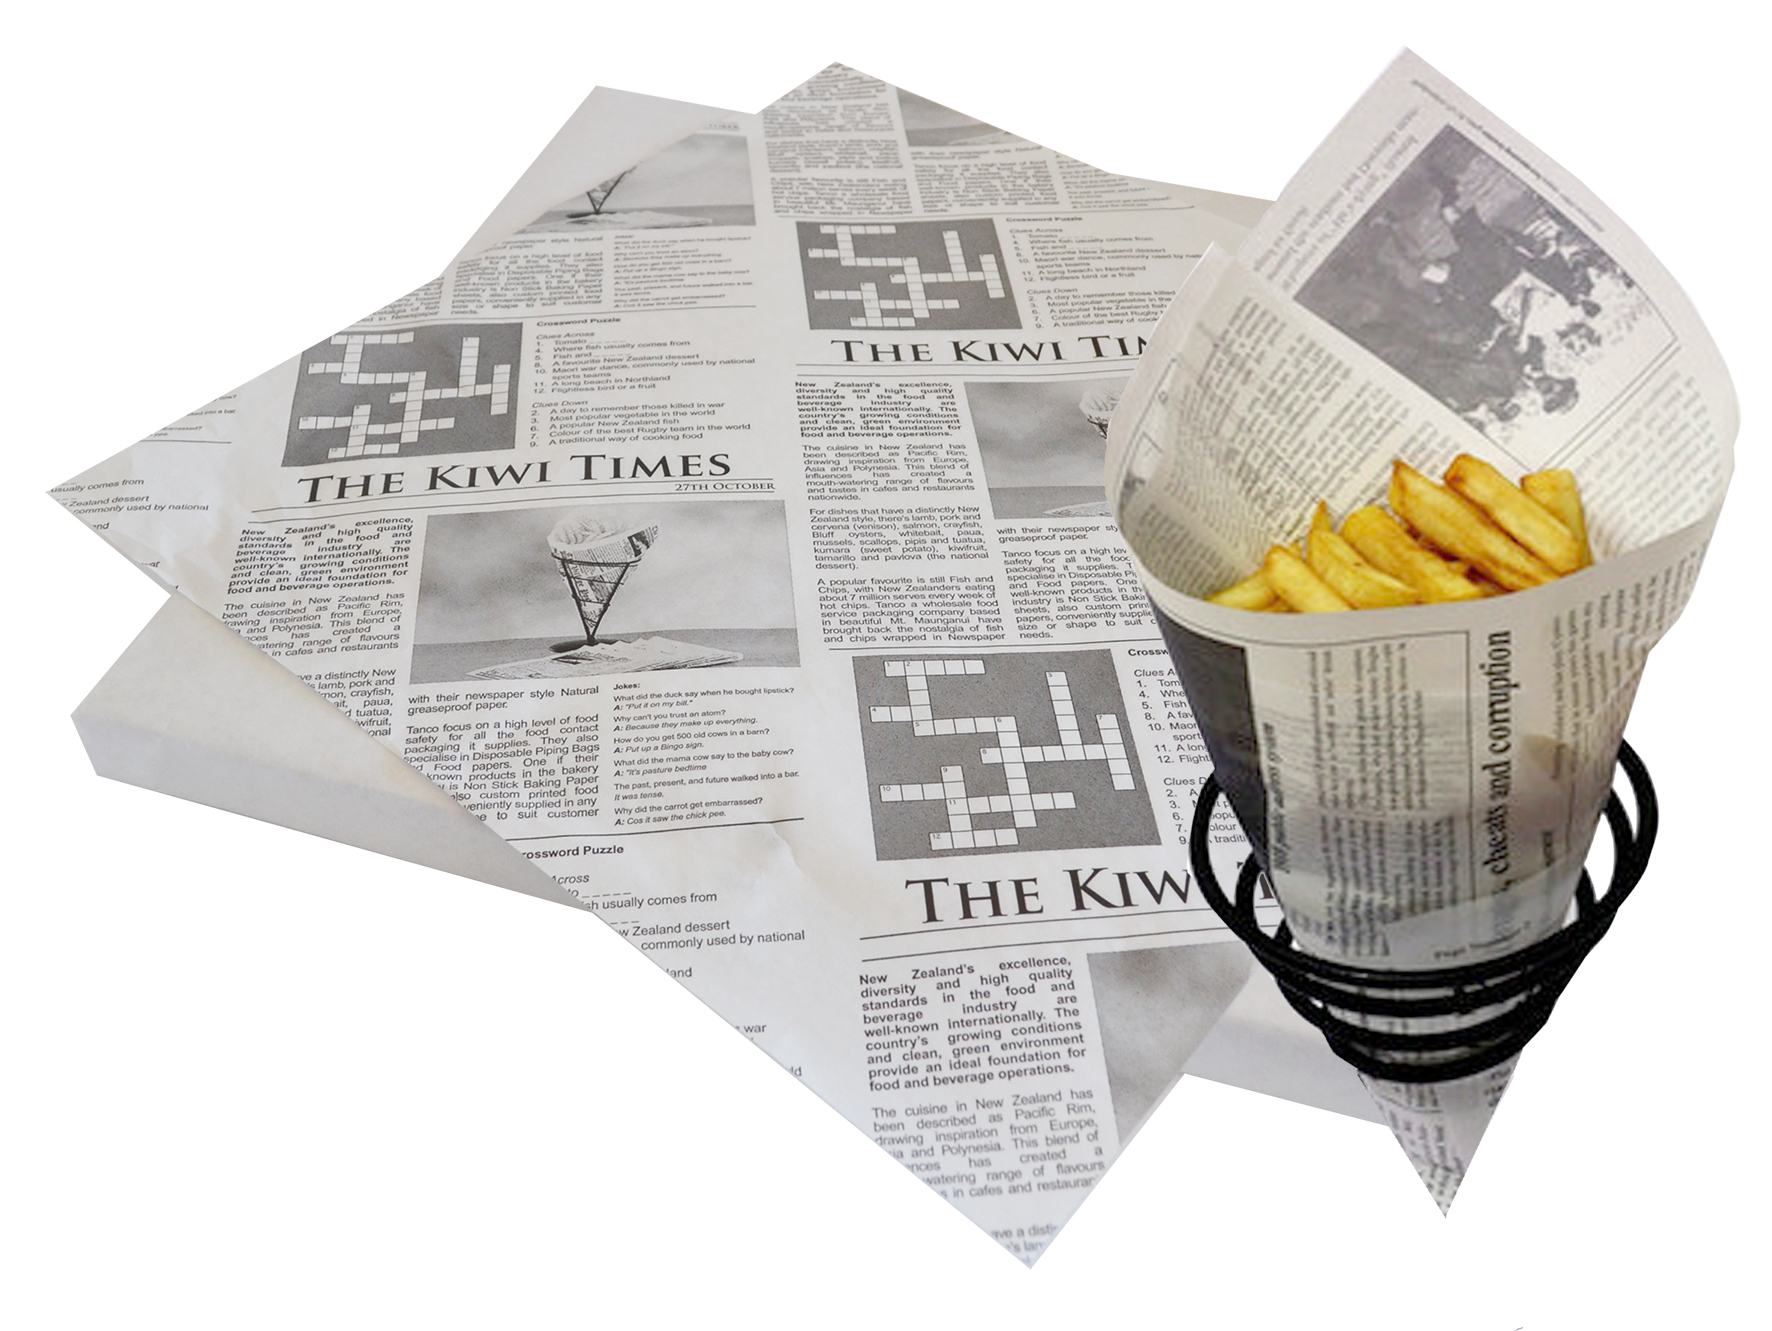 Kiwi Times Greaseproof Paper Commercial Kitchen Supplies